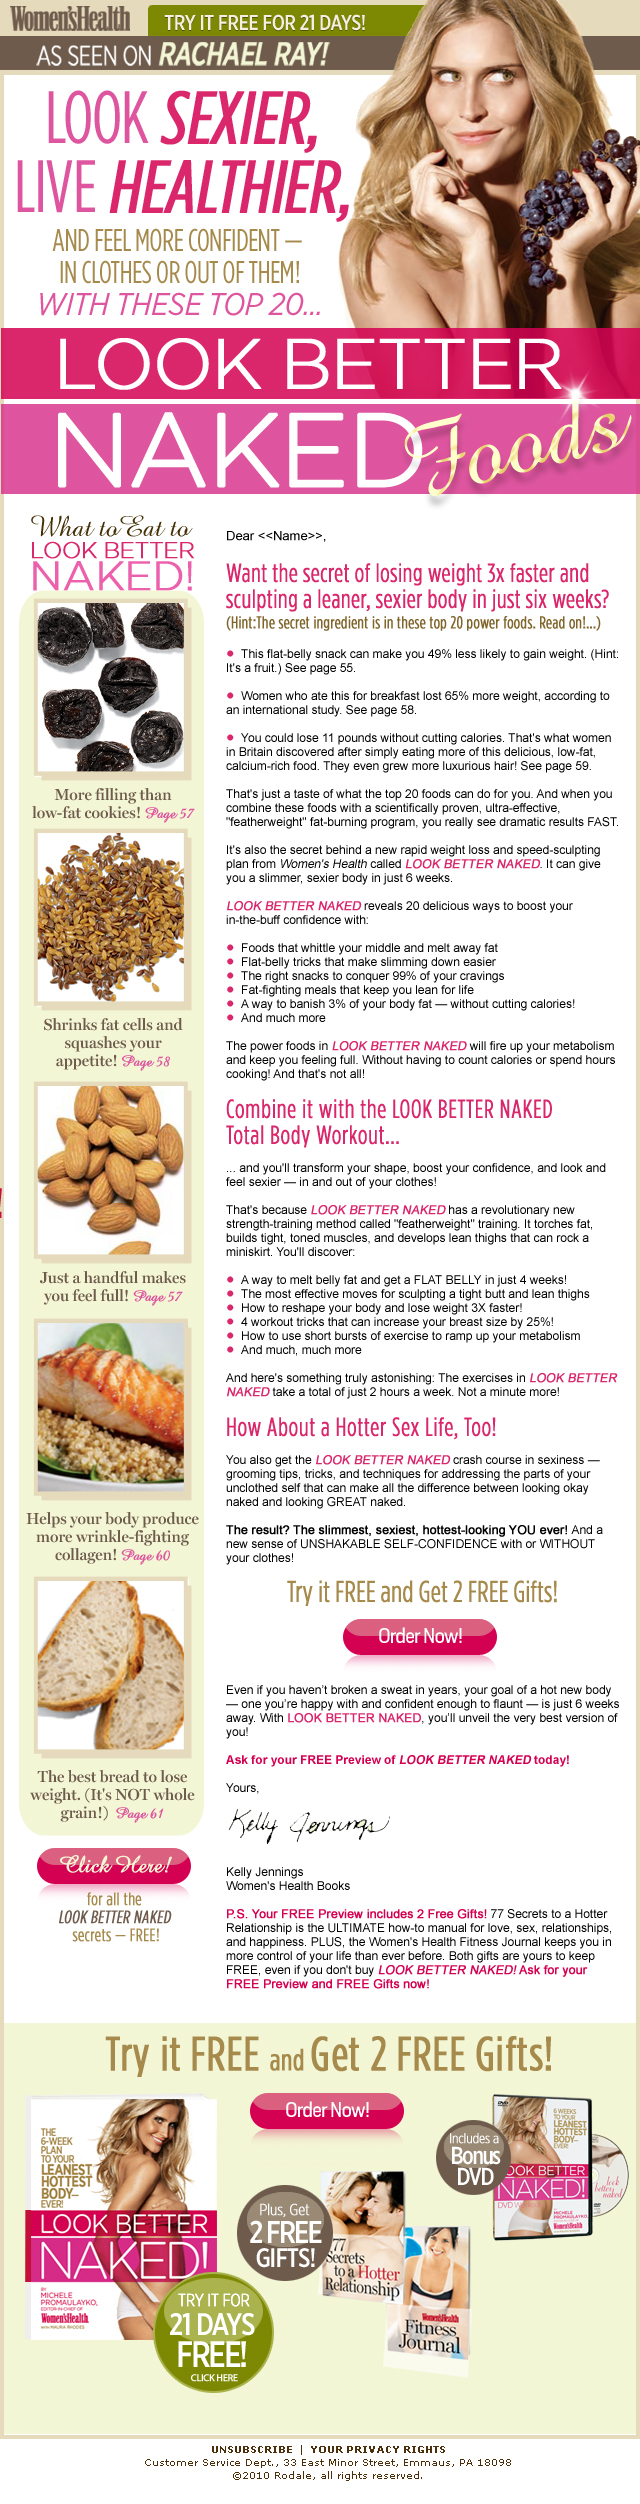 Women's Health Email Campaign